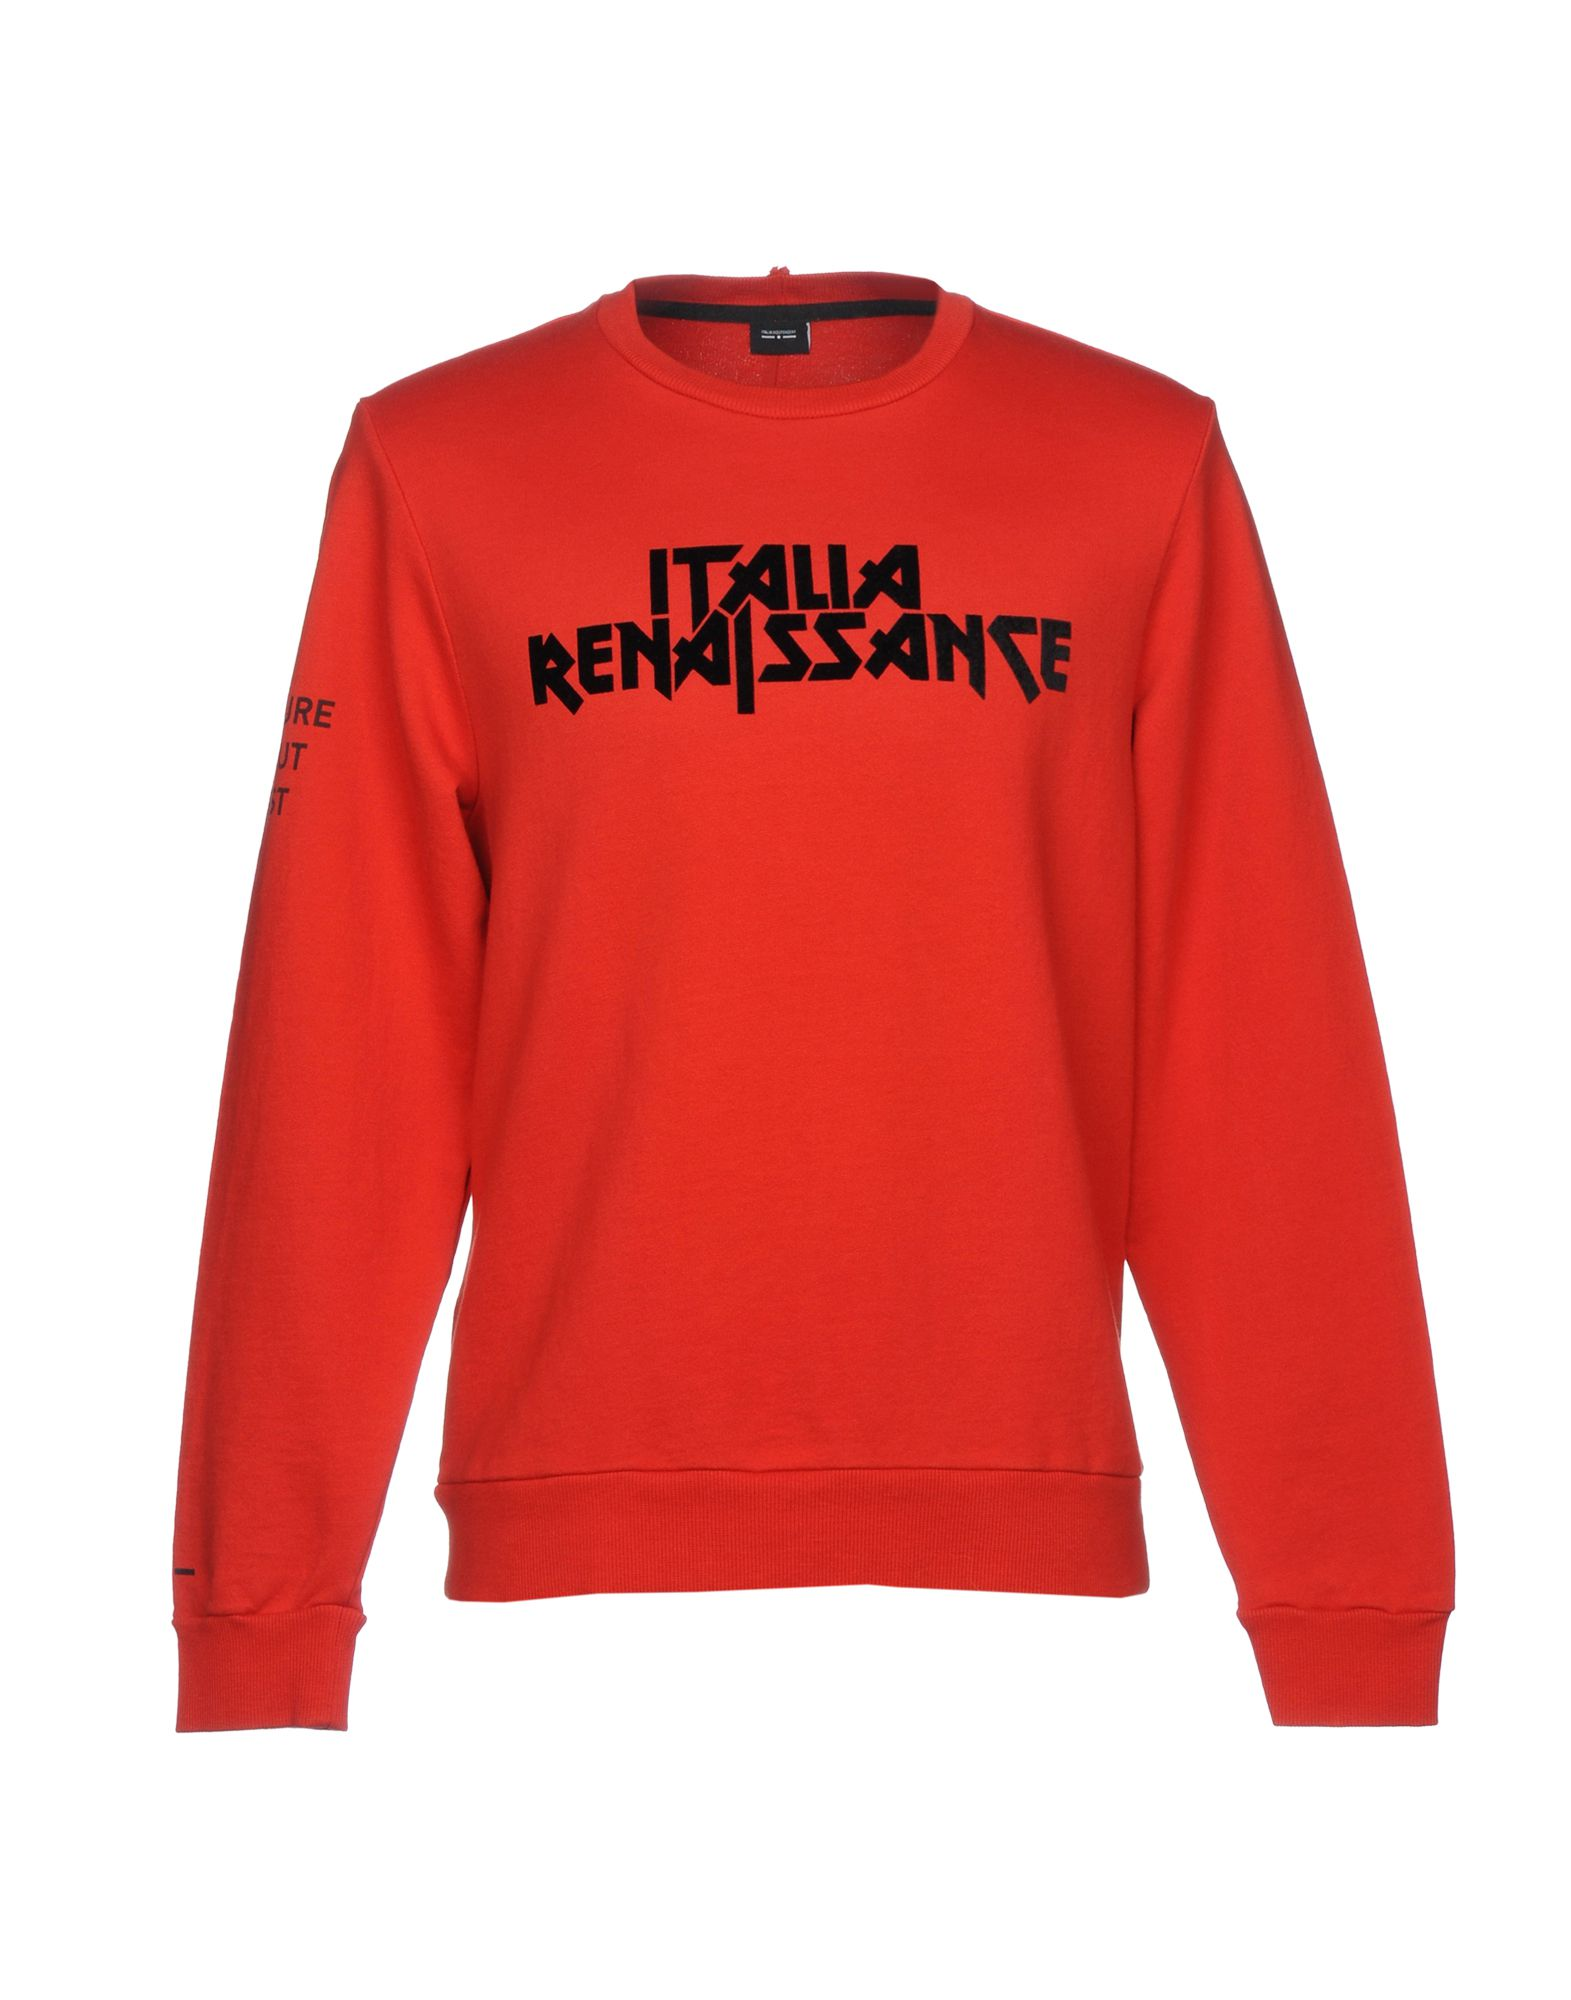 ITALIA INDEPENDENT Sweatshirt in Red